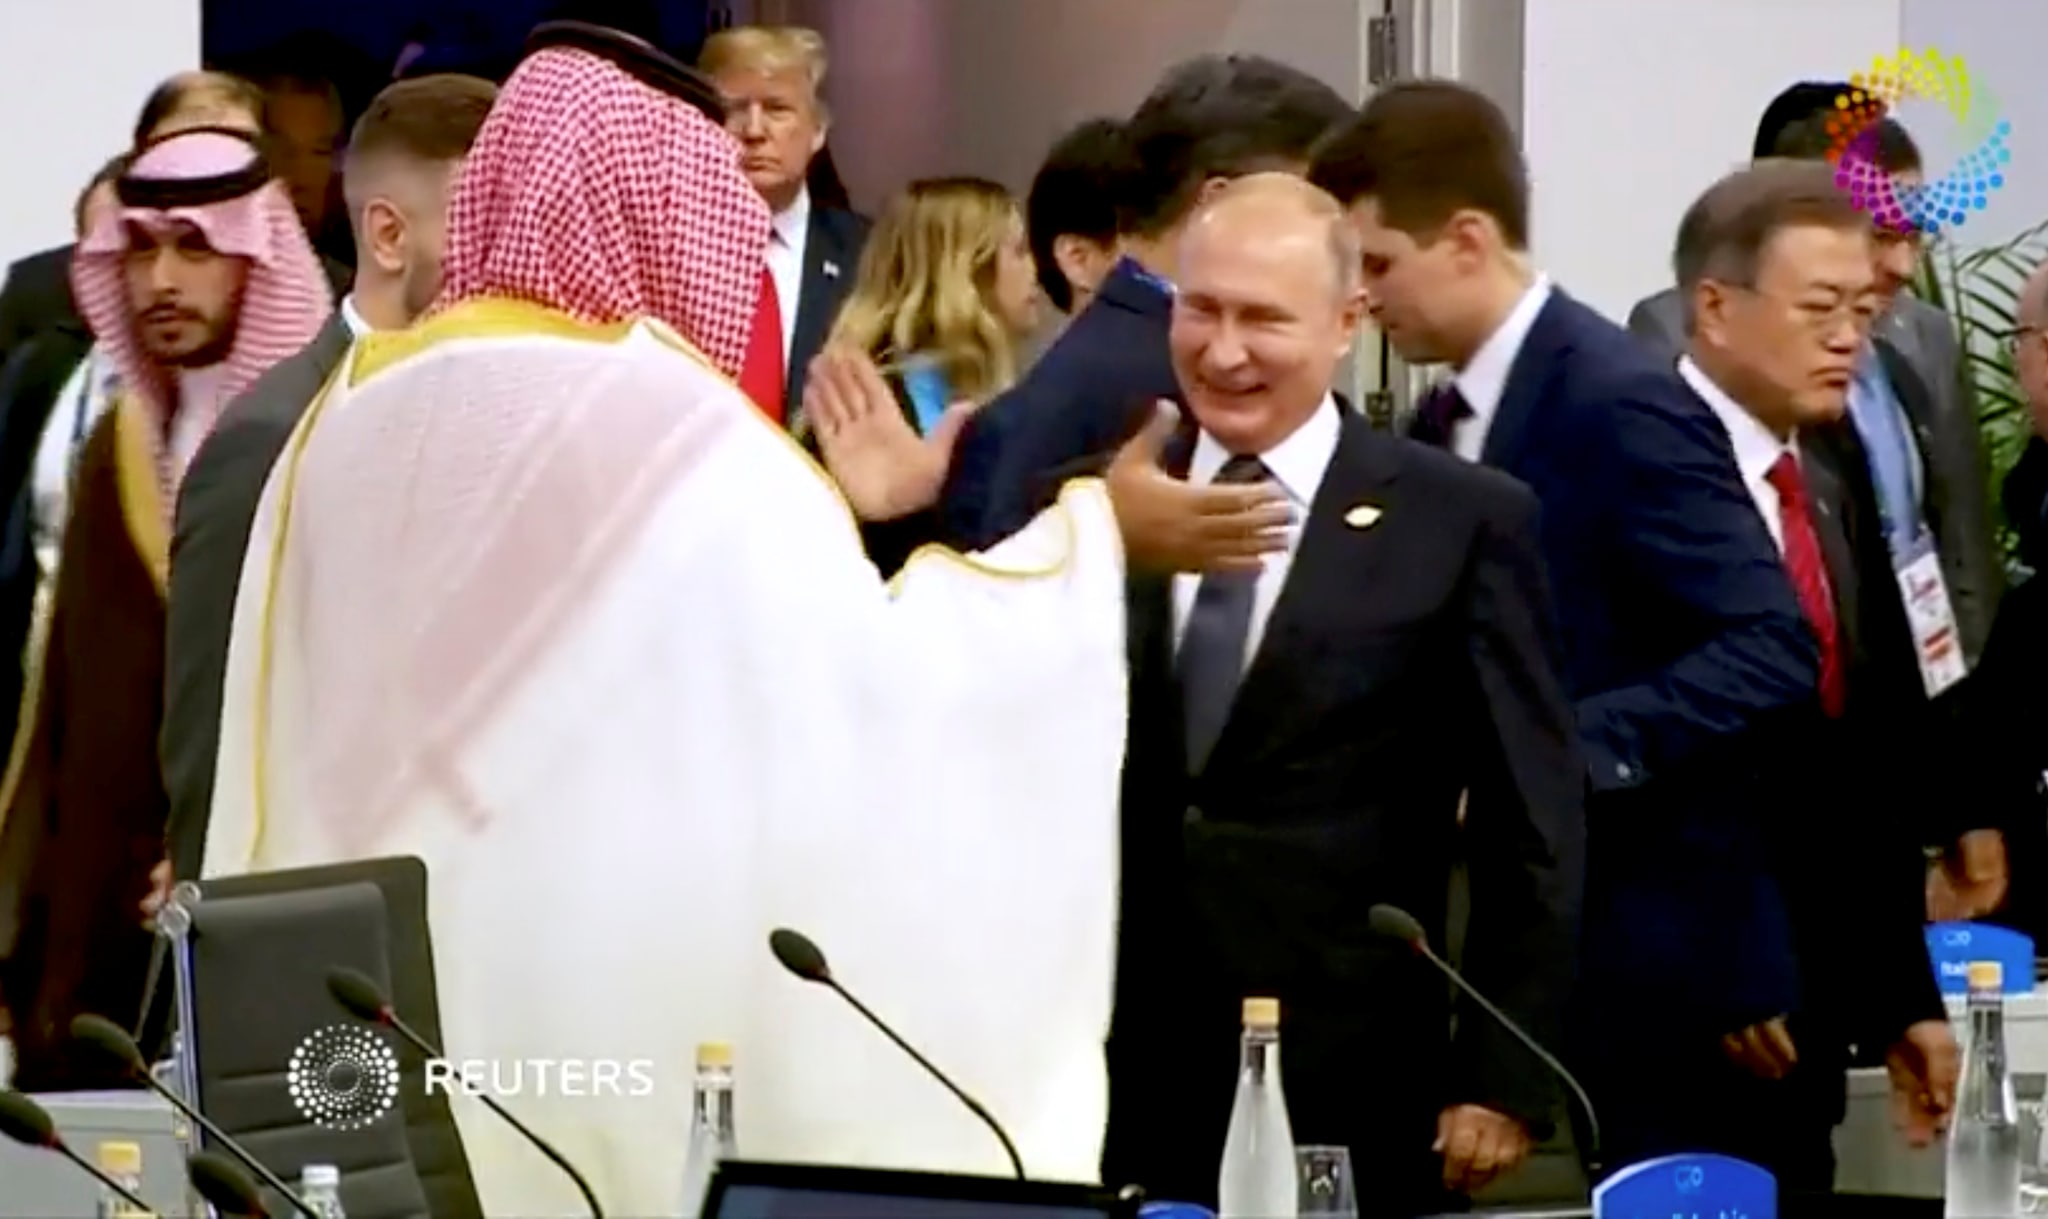 Saudi Arabia's Crown Prince Mohammed bin Salman greets Russia's President Vladimir Putin during the opening of the G20 leaders summit in Buenos Aires, Argentina November 30, 2018 in this picture taken from video. Reuters TV Summit Pool via REUTERS